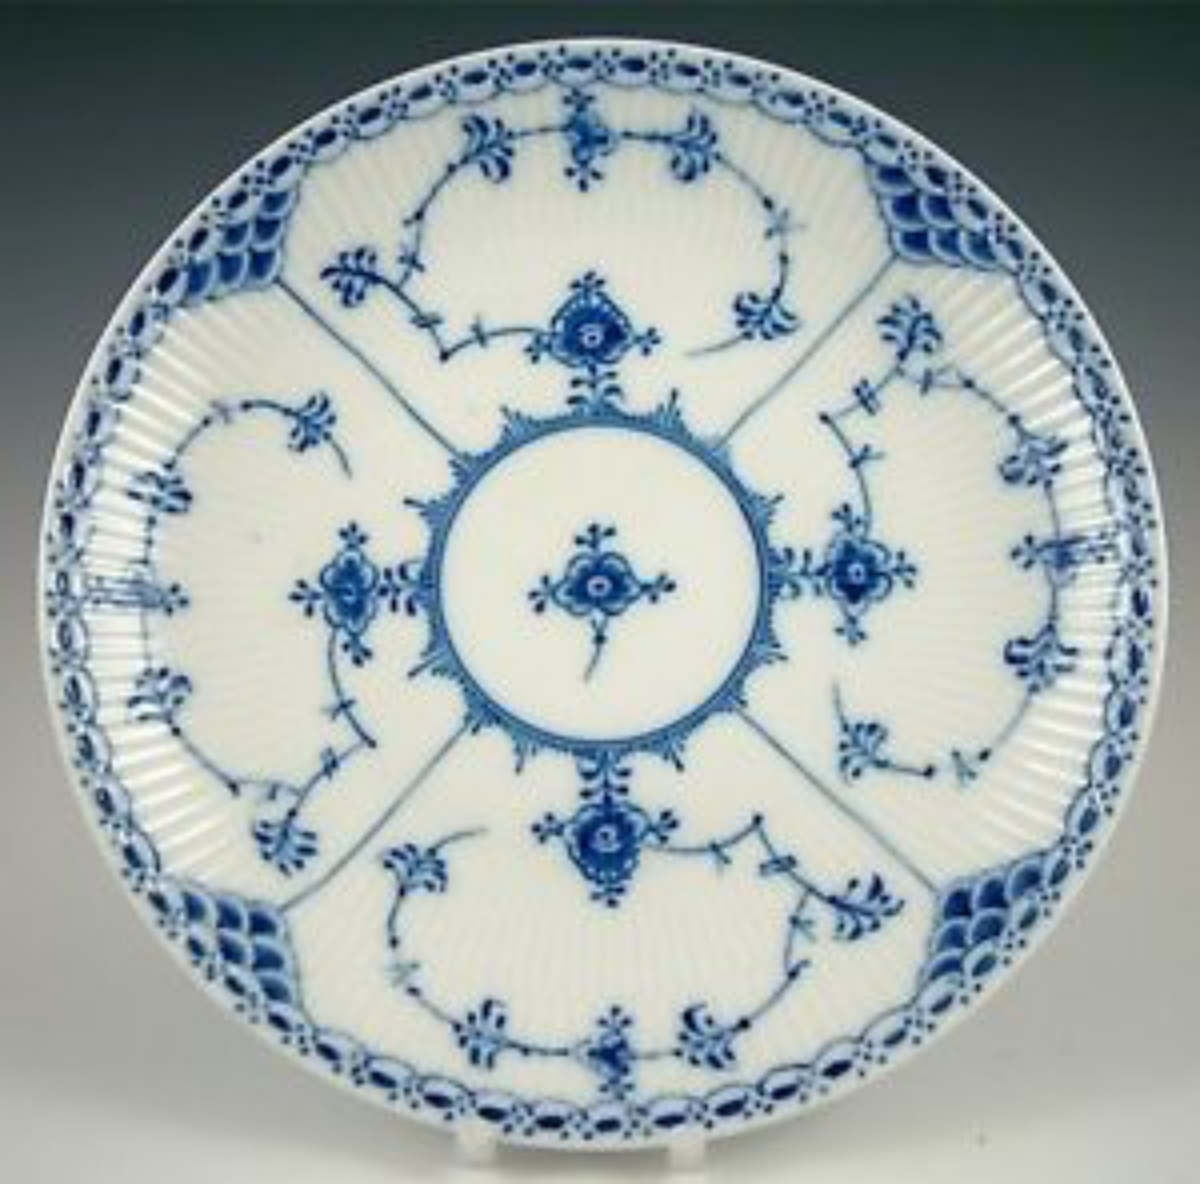 10 most popular china patterns and what to look for 12 Most popular china patterns